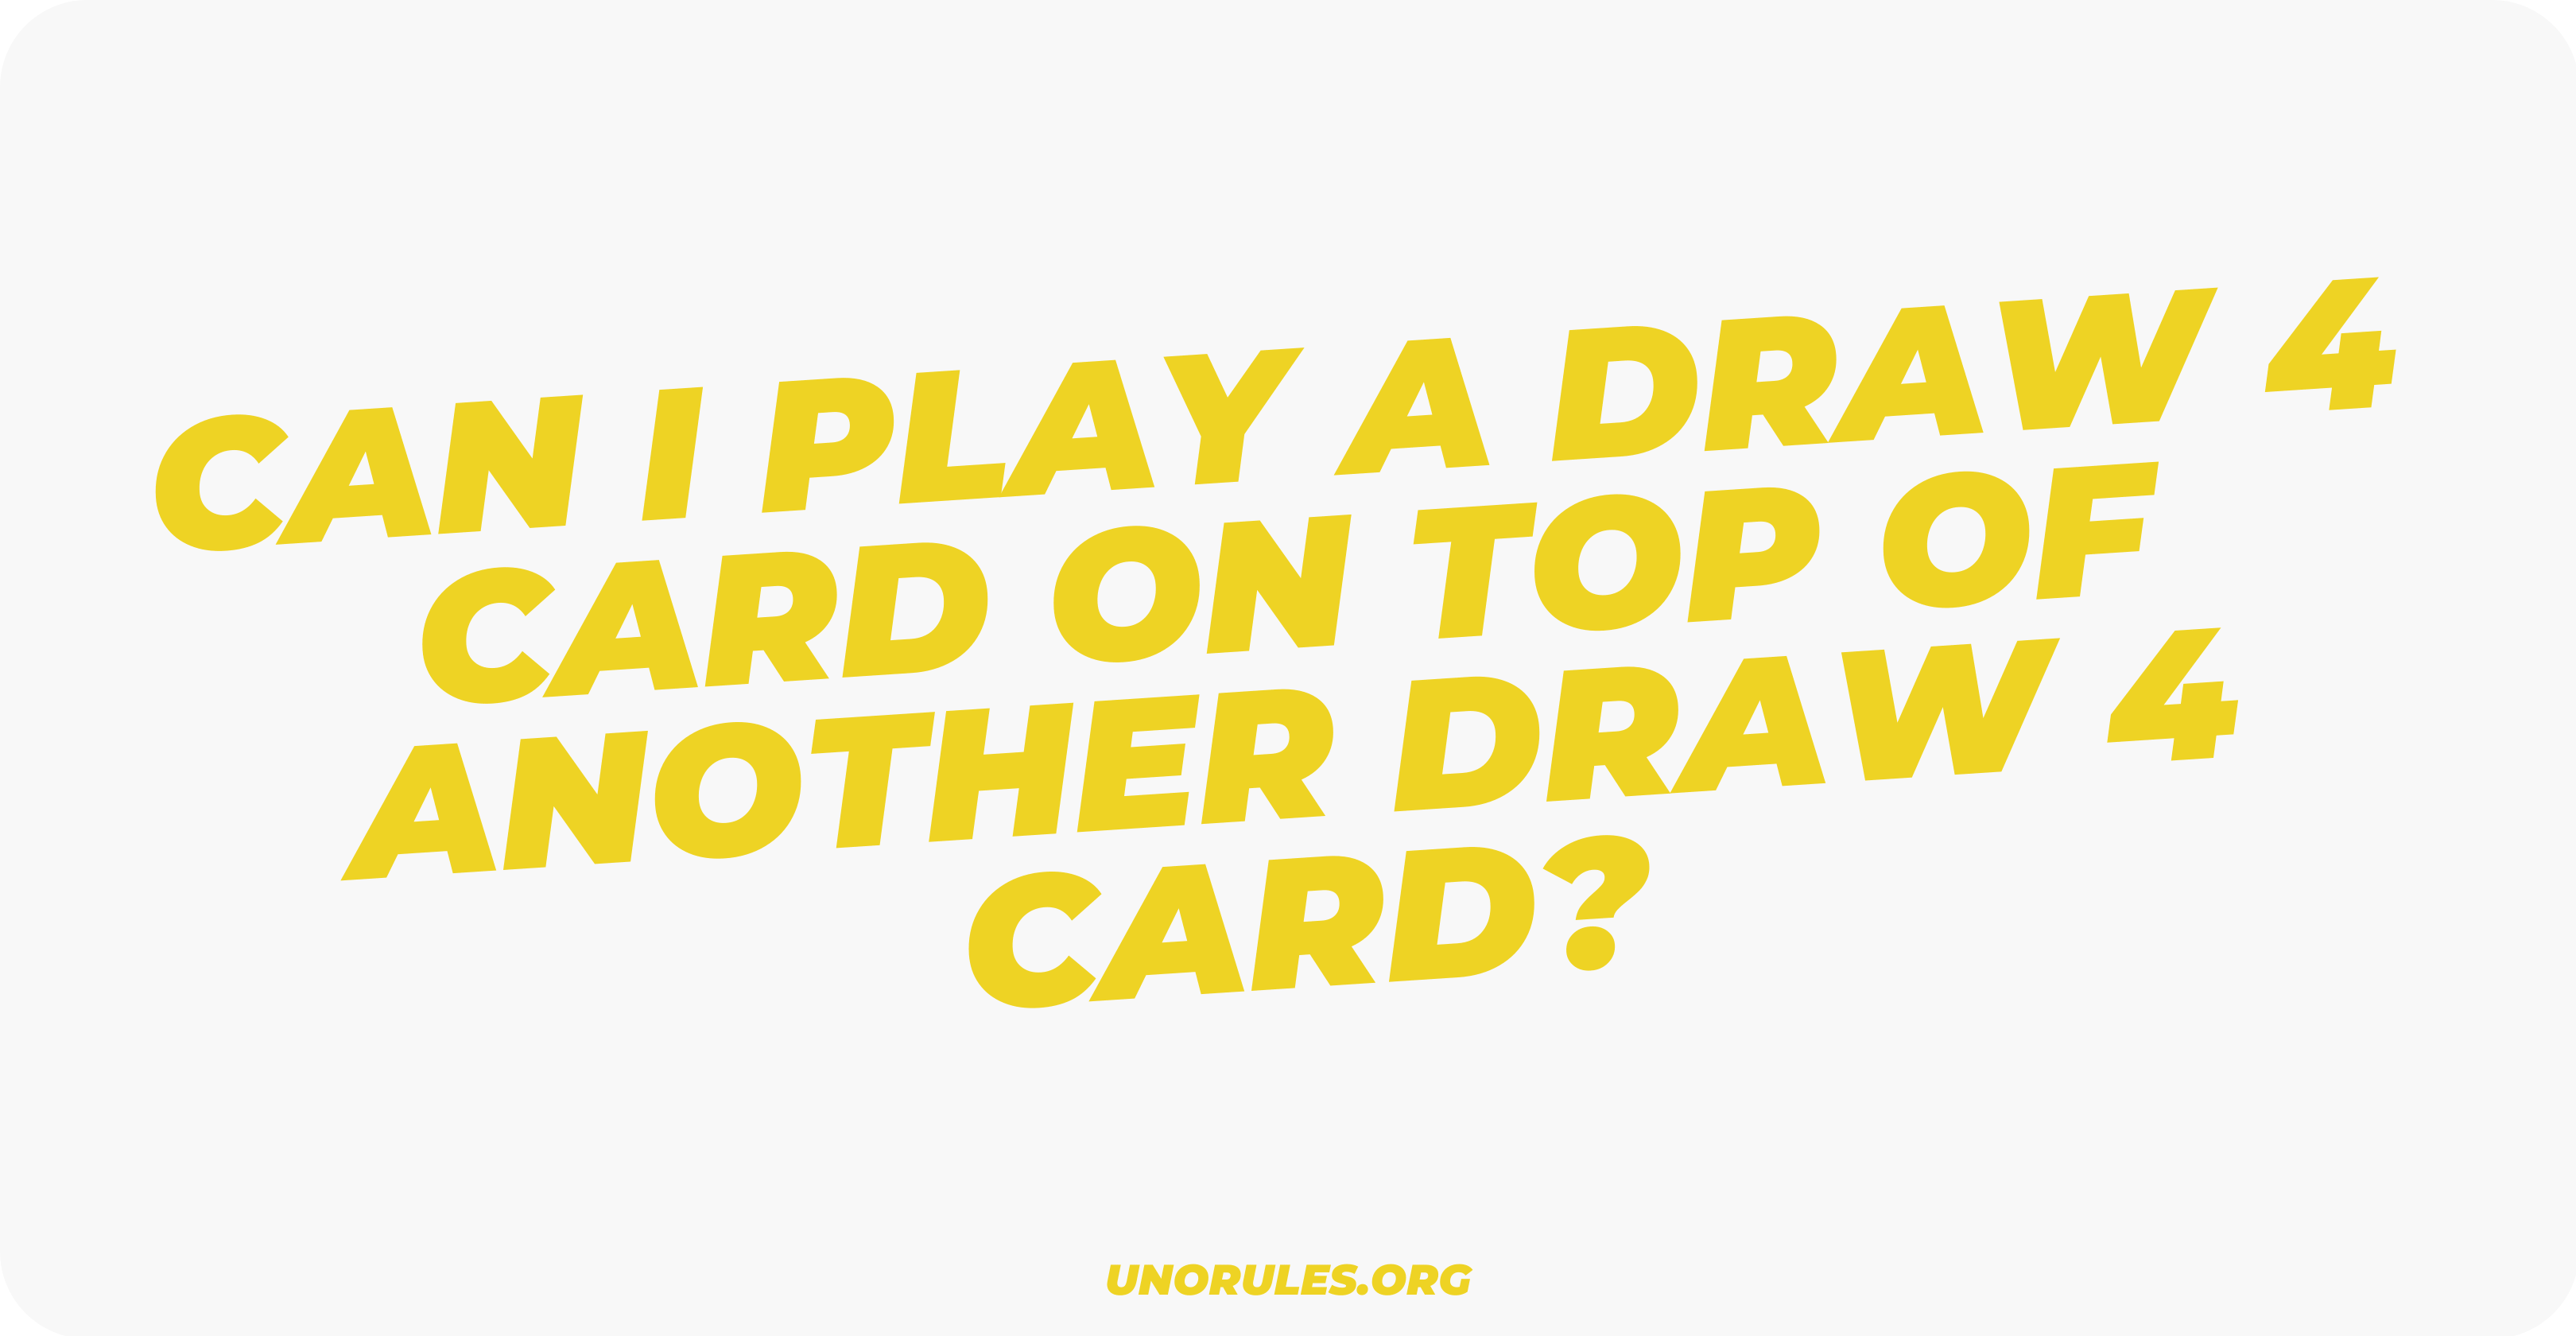 Can I play a Draw 4 card on top of another Draw 4 card